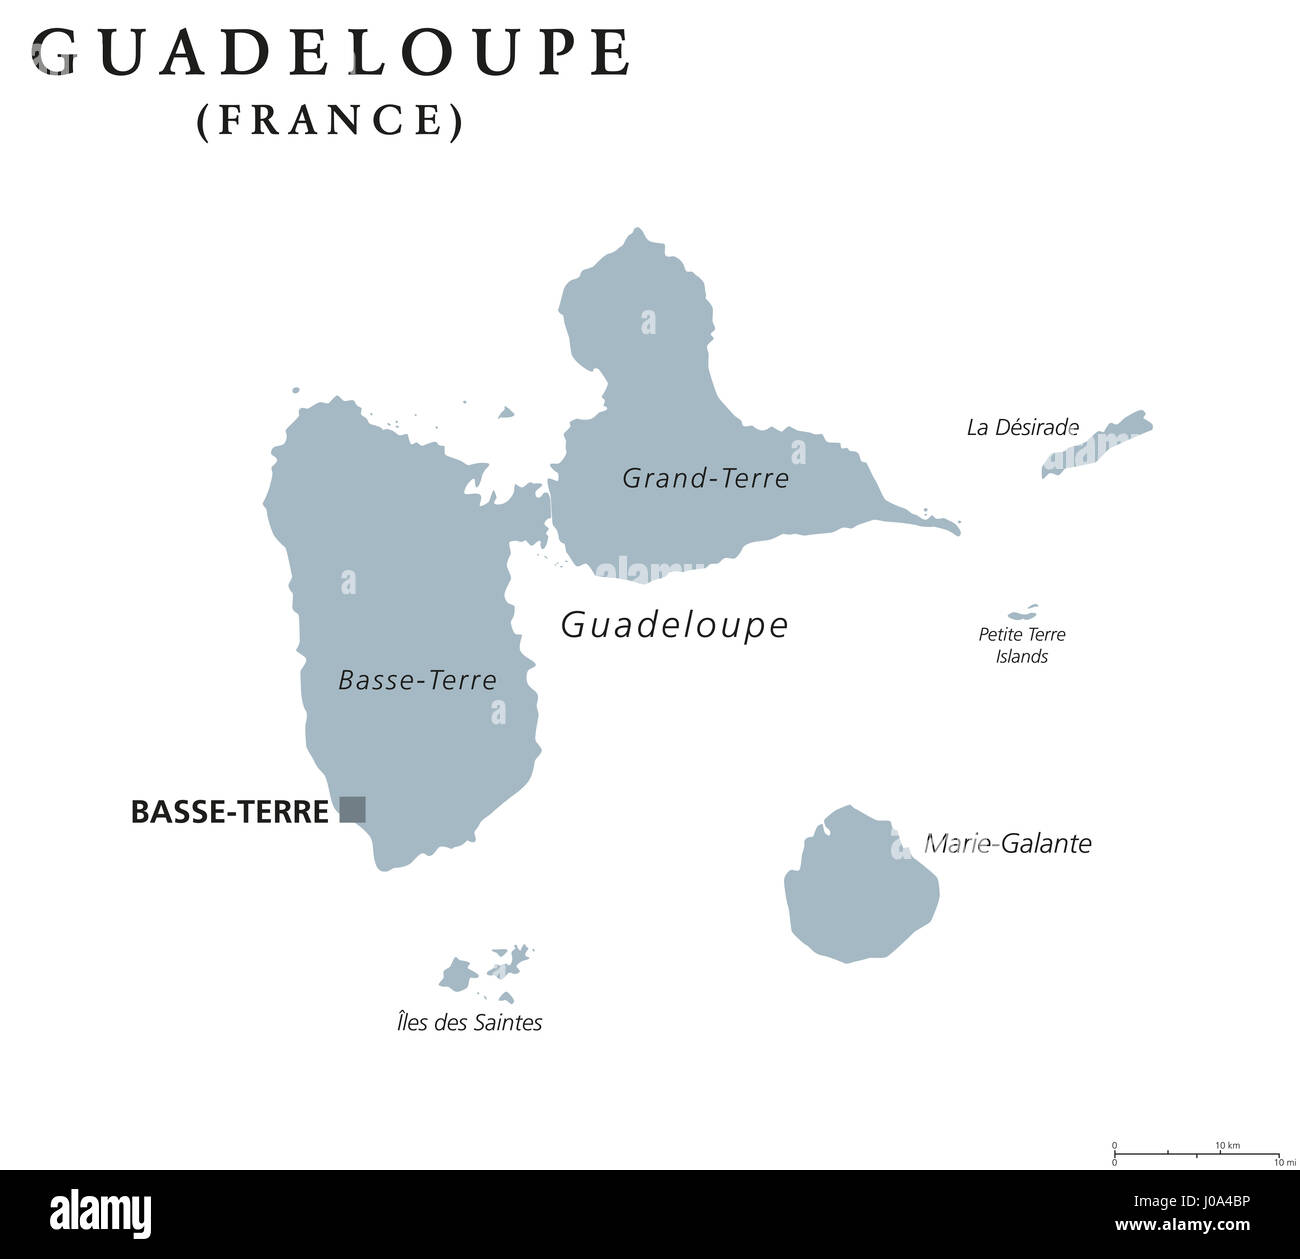 Guadeloupe Political Map With Capital Basse Terre. Caribbean Islands And  Overseas Region Of France